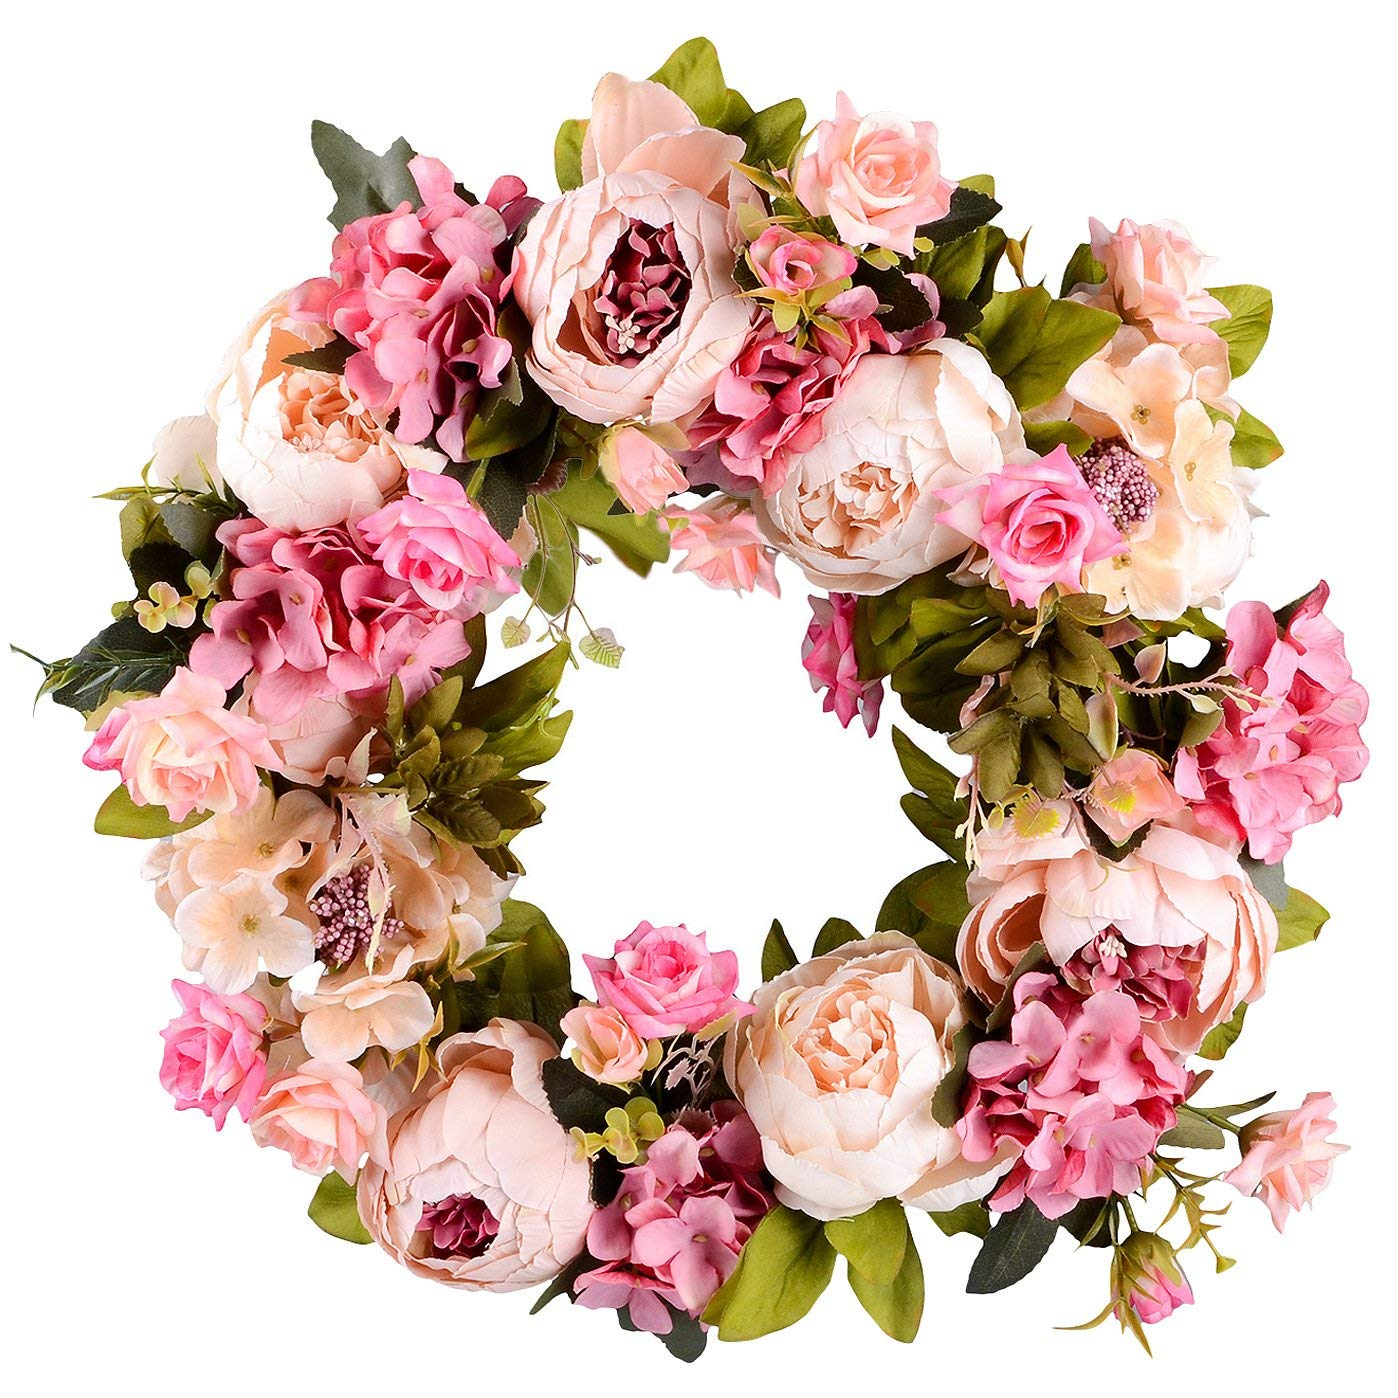 Artificial Flower Wreath Peony Wreath - 16inch Door Spring Wreath Round Wreath For The Front Door, Wedding, Home